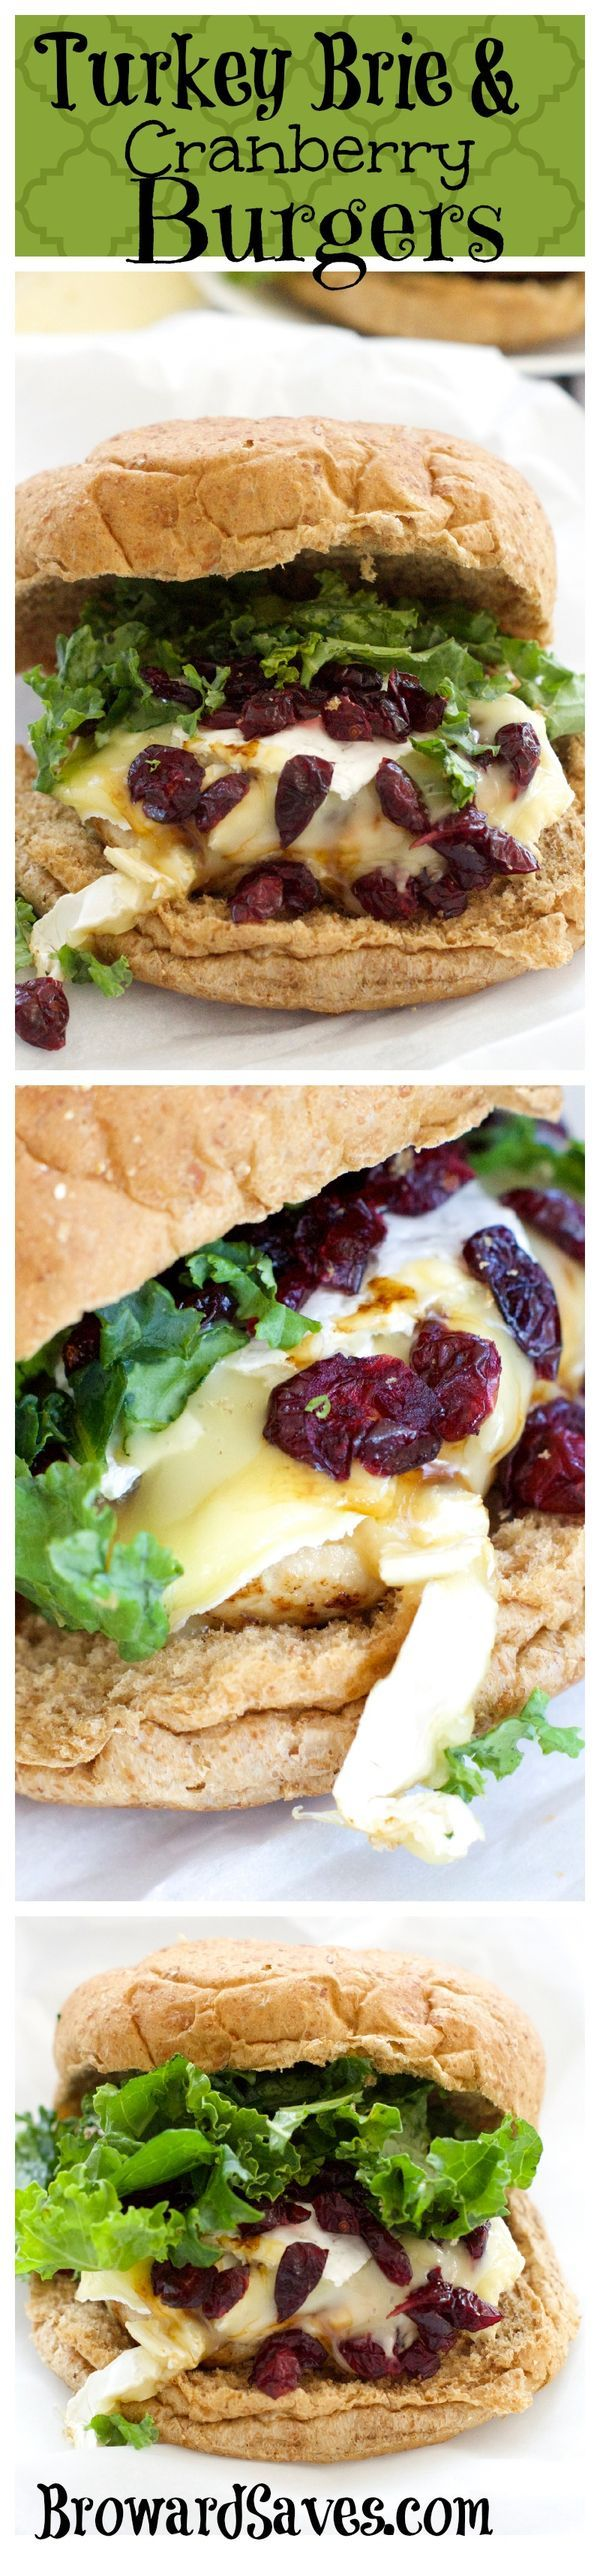 This Turkey Brie & Cranberry Burger Recipe cooks in 15 minutes or less. The perfect gourmet burger recipe! Enjoy a sophisticated meal for dinner or lunch. More burger recipes on livingsweetmoments.com